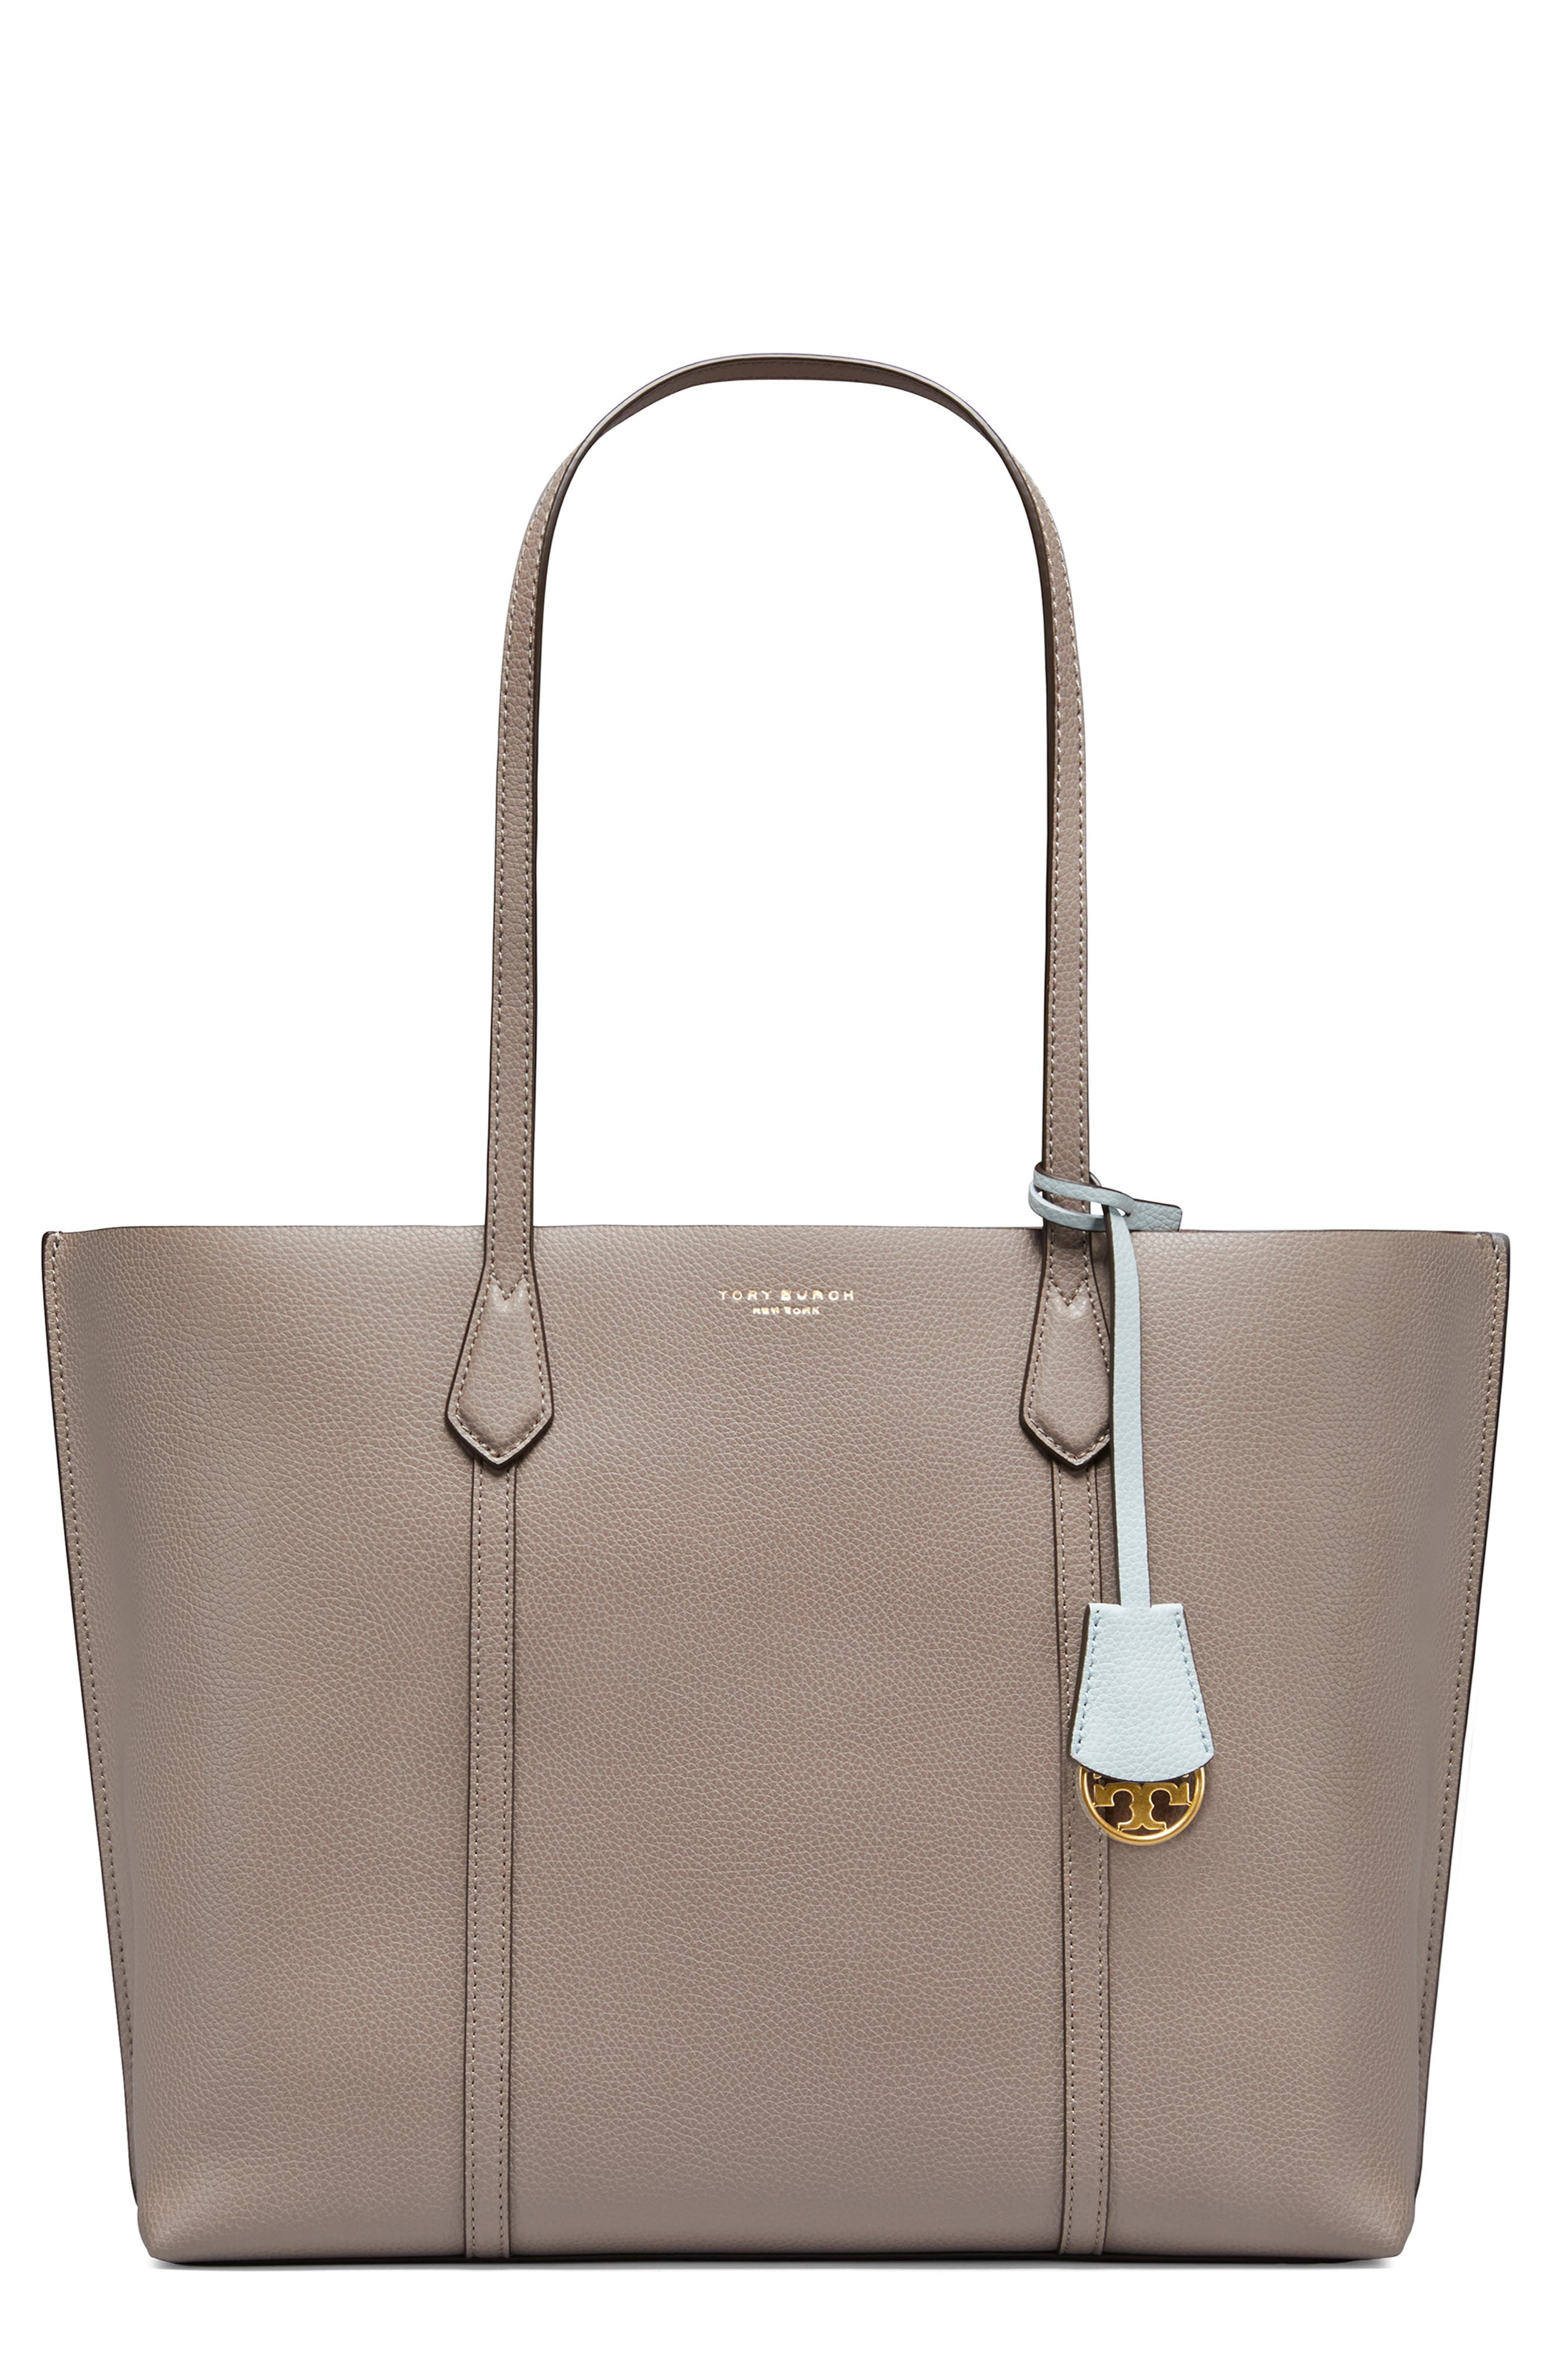 Perry Leather Tote - Grey in Gray Heron